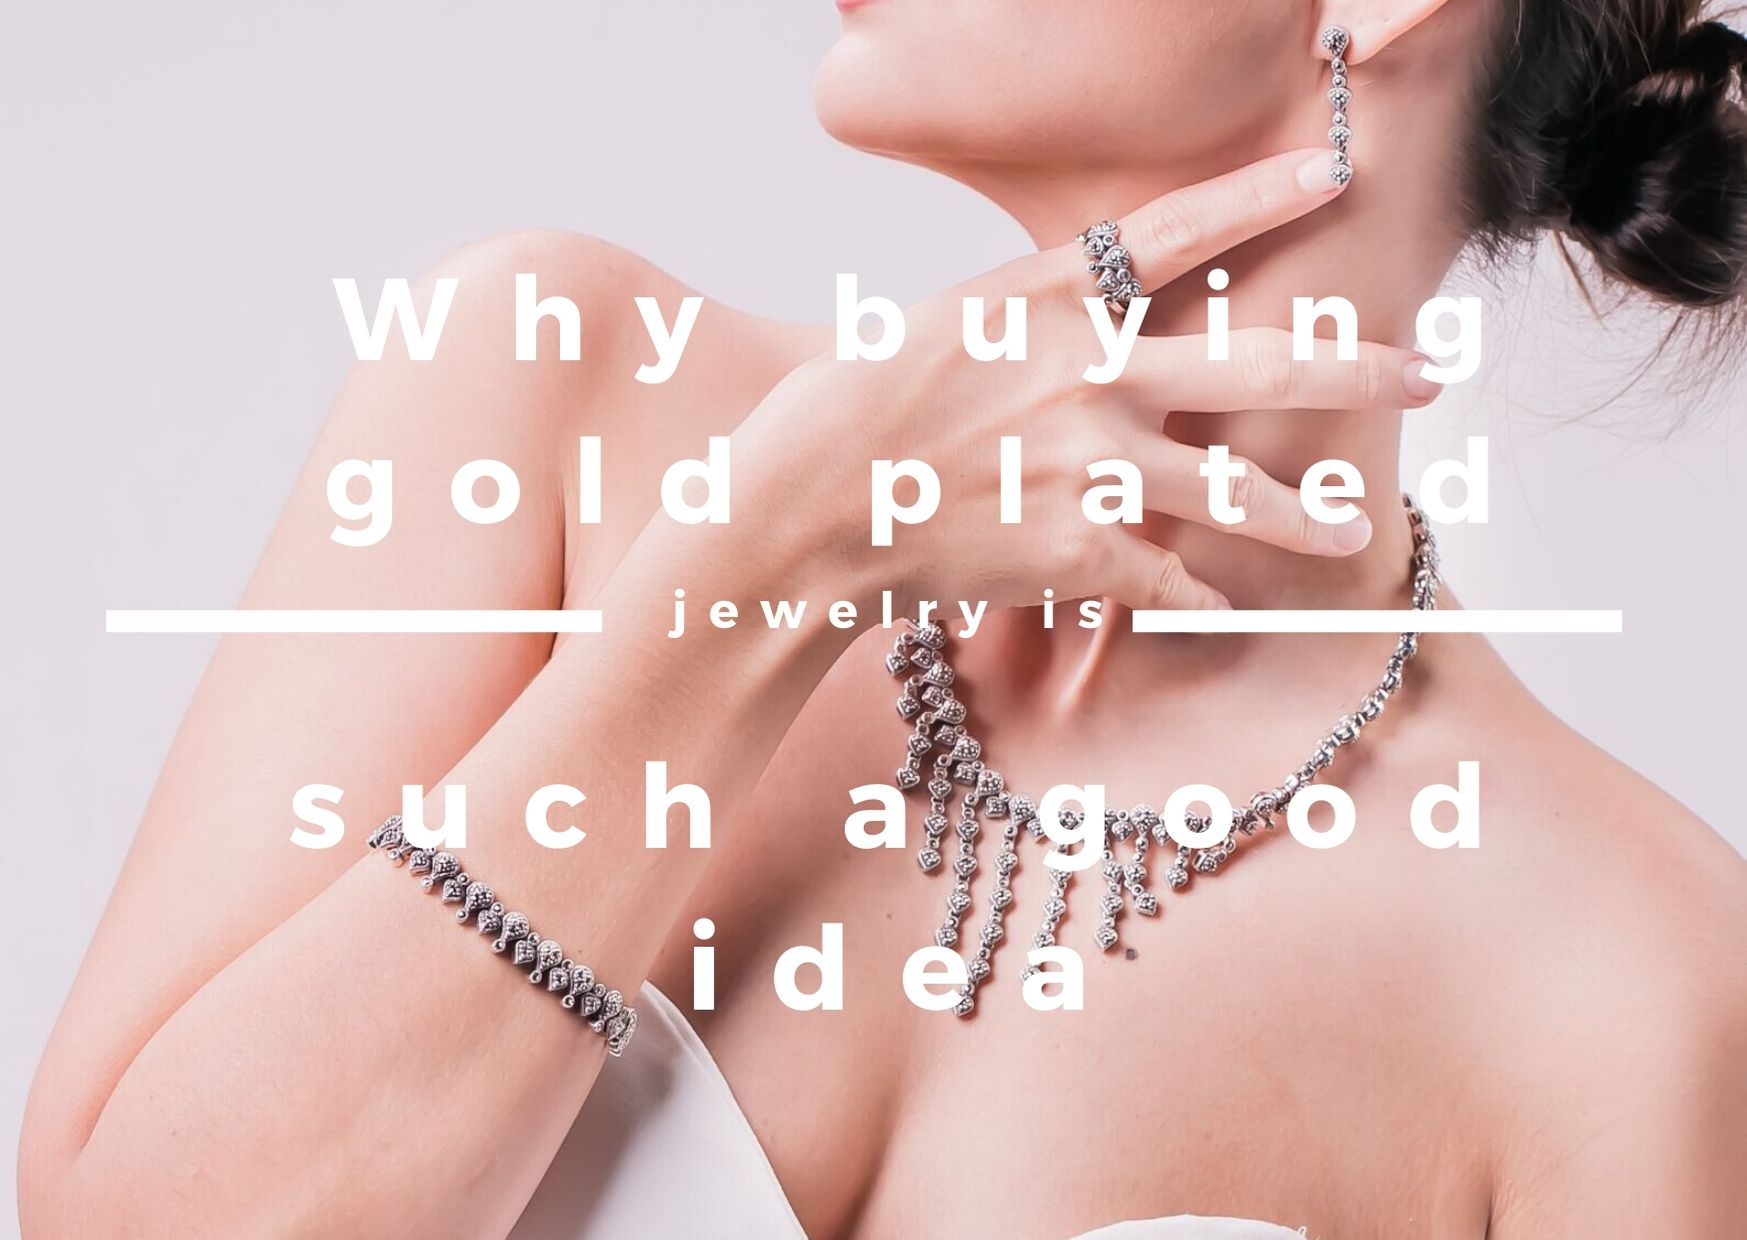 Why buying gold plated jewelry is such a good idea